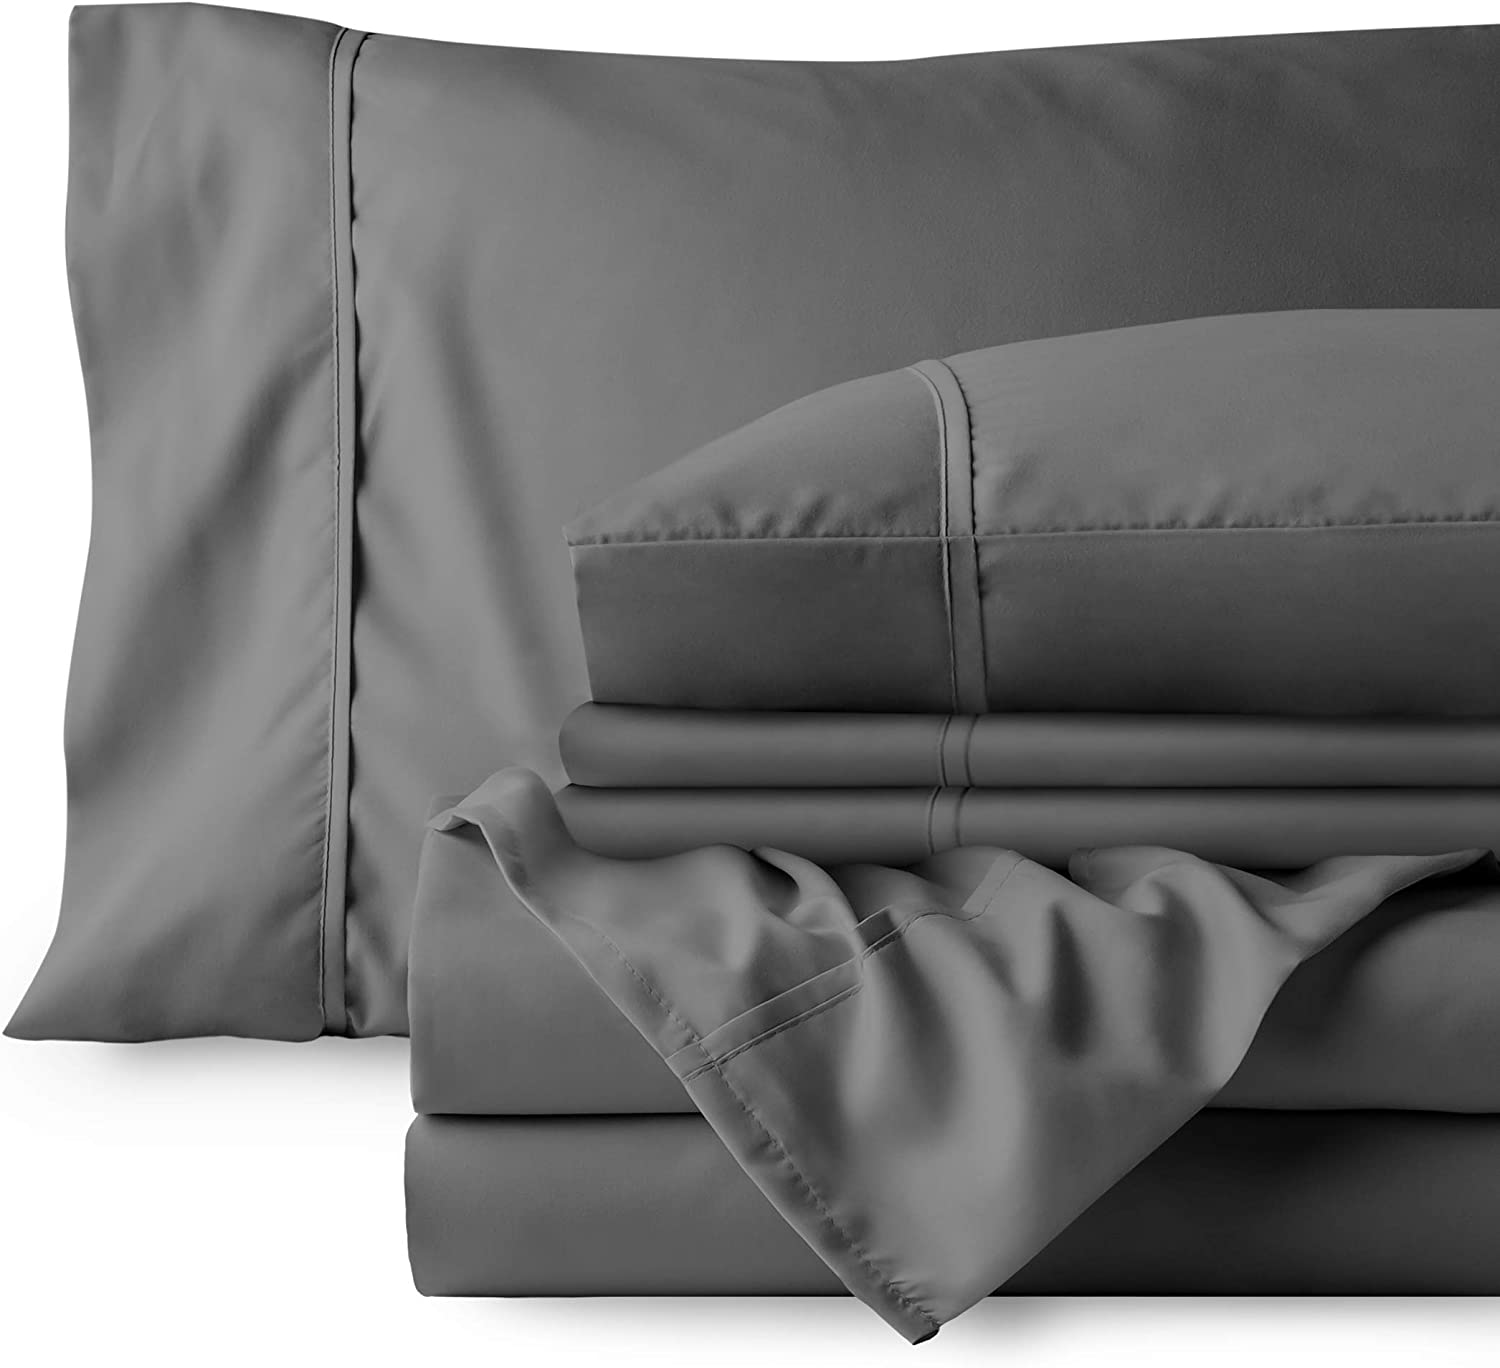 Bare Home 6 Piece 1800 Deep Pocket Bed Sheet Set - Ultra-Soft Hypoallergenic - 4 Pillowcases (Queen, Grey)